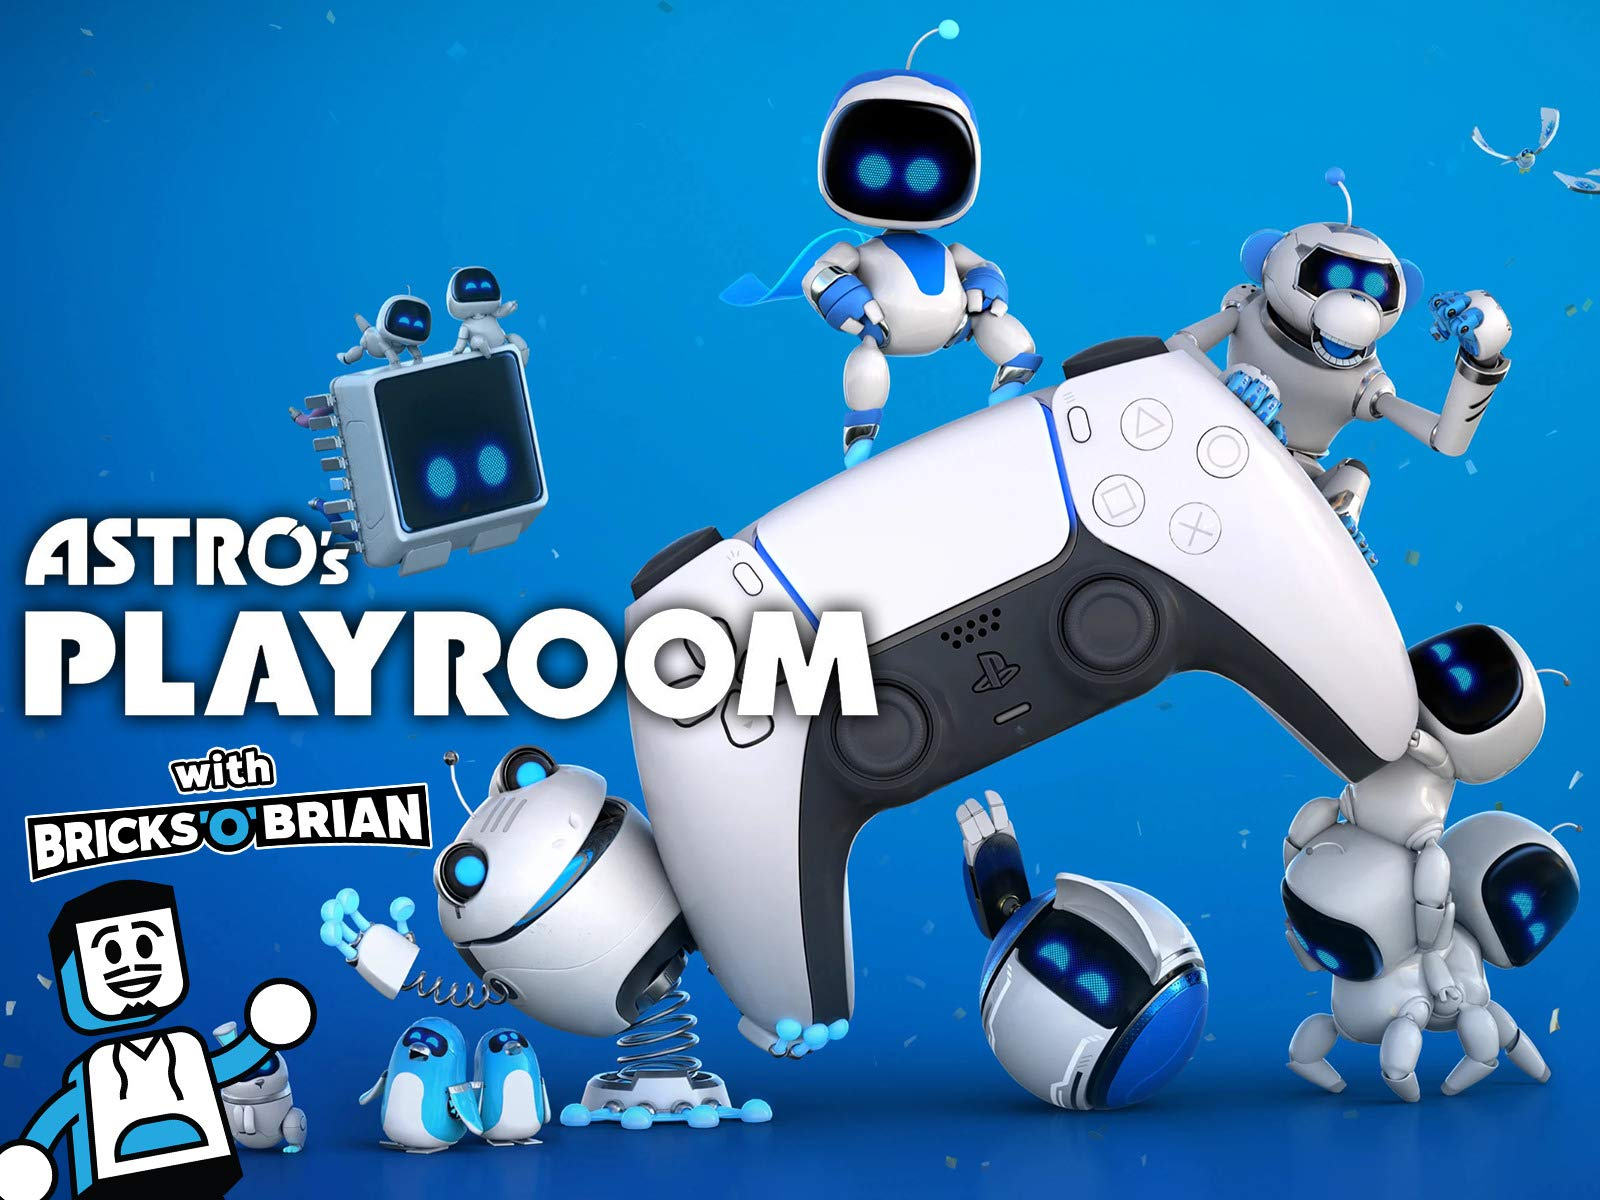 Clip: Astro's Playroom with Bricks 'O' Brian! - Season 1